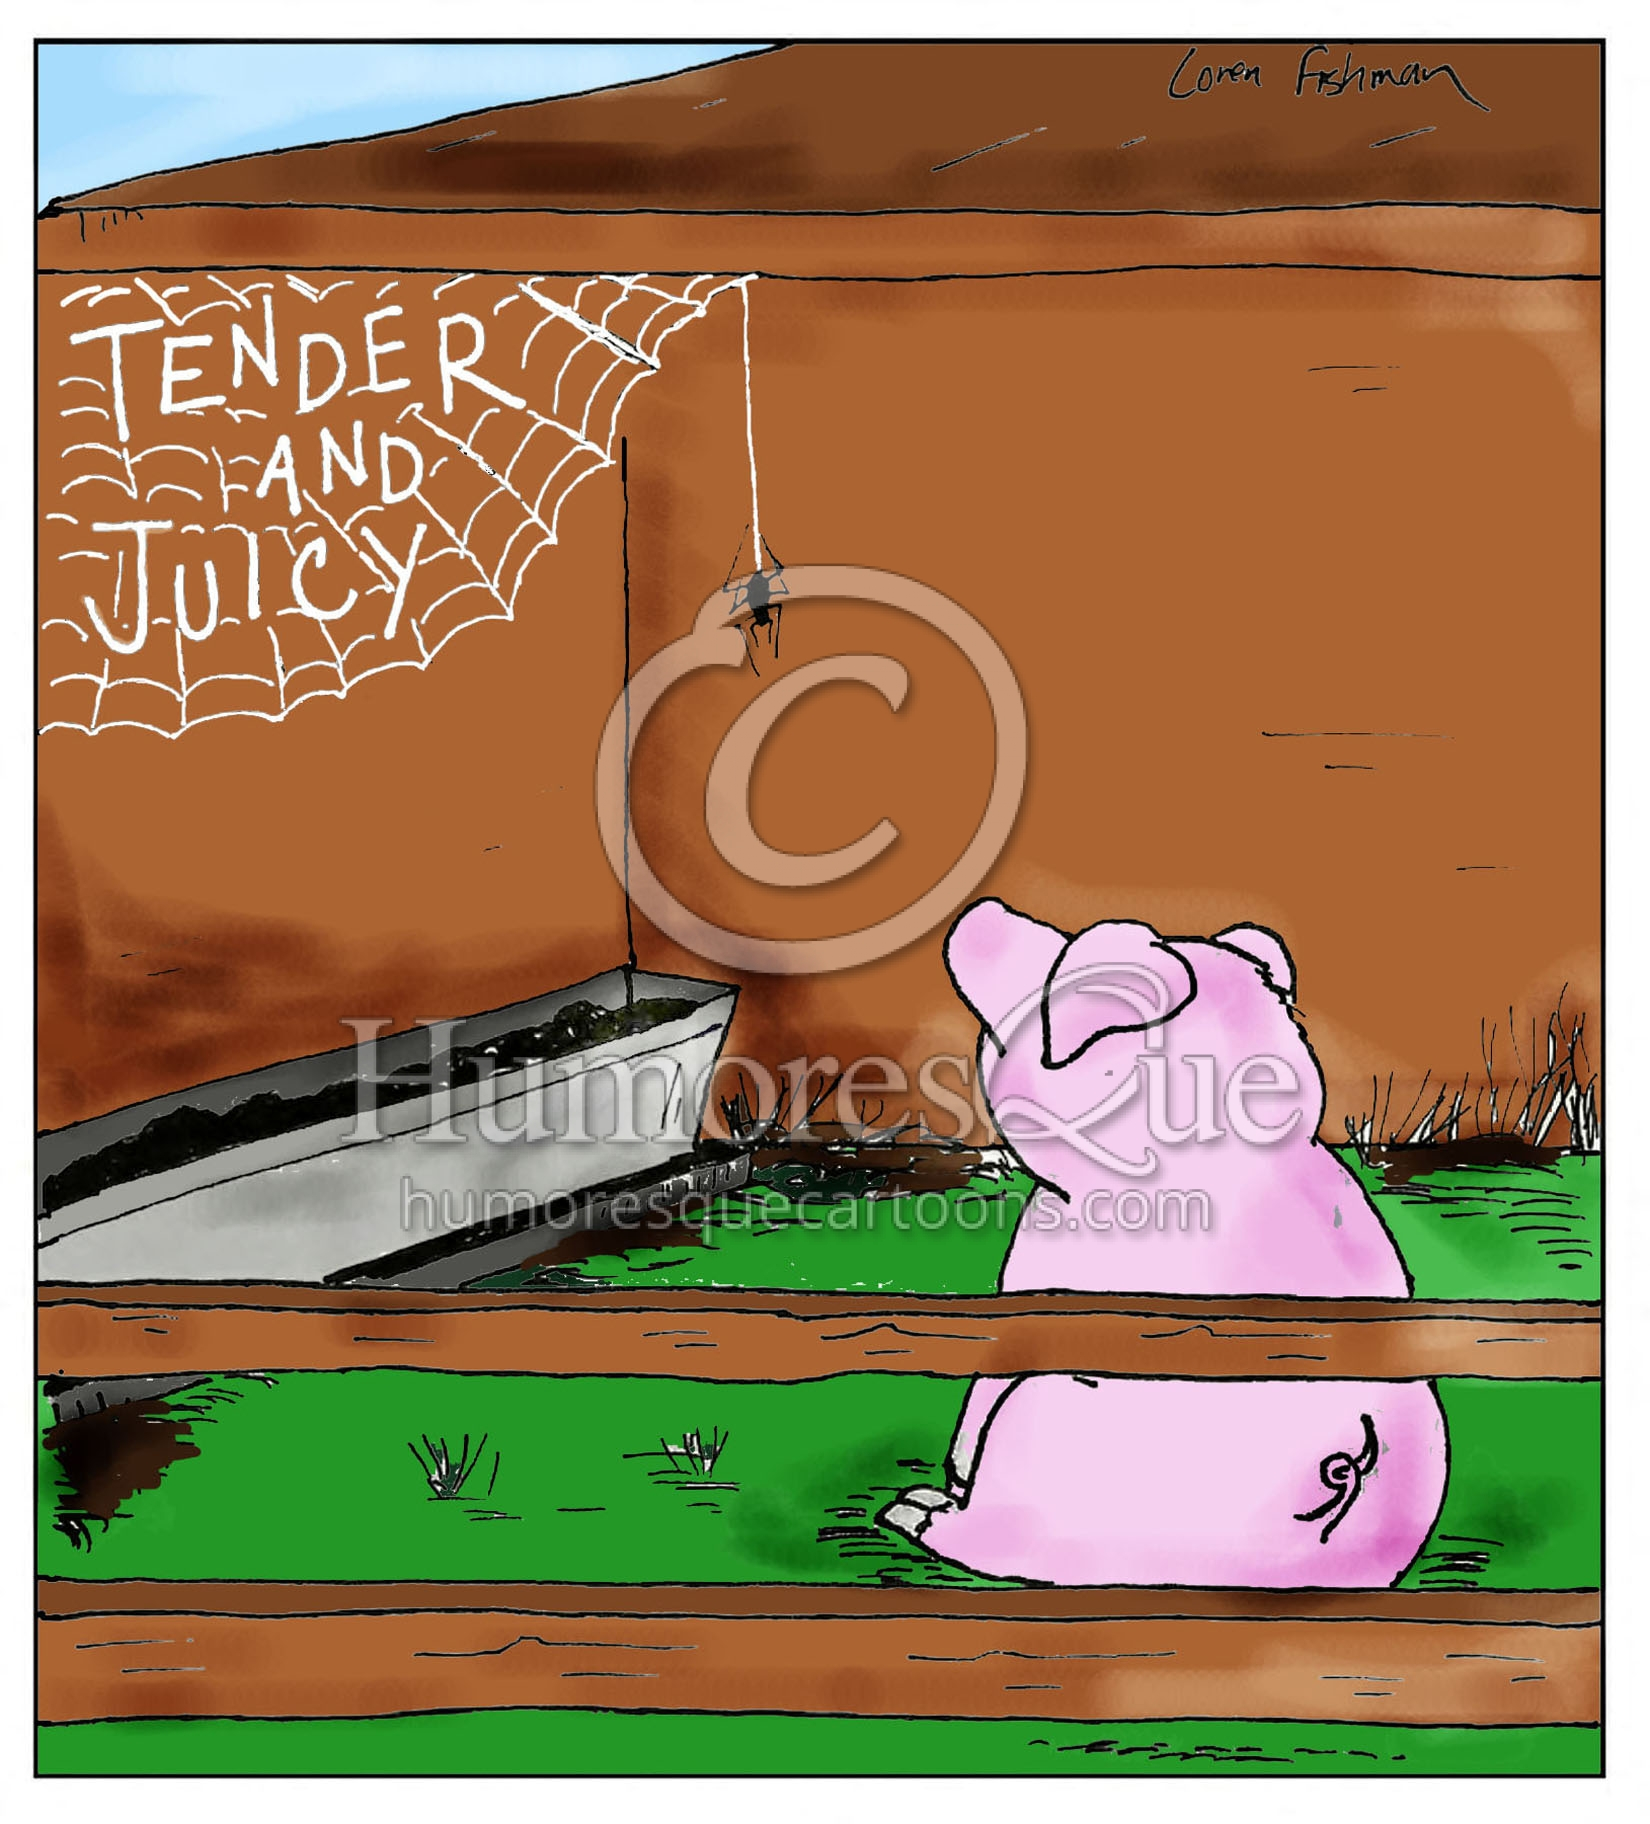 charlotte's web says tender and juicy cartoon